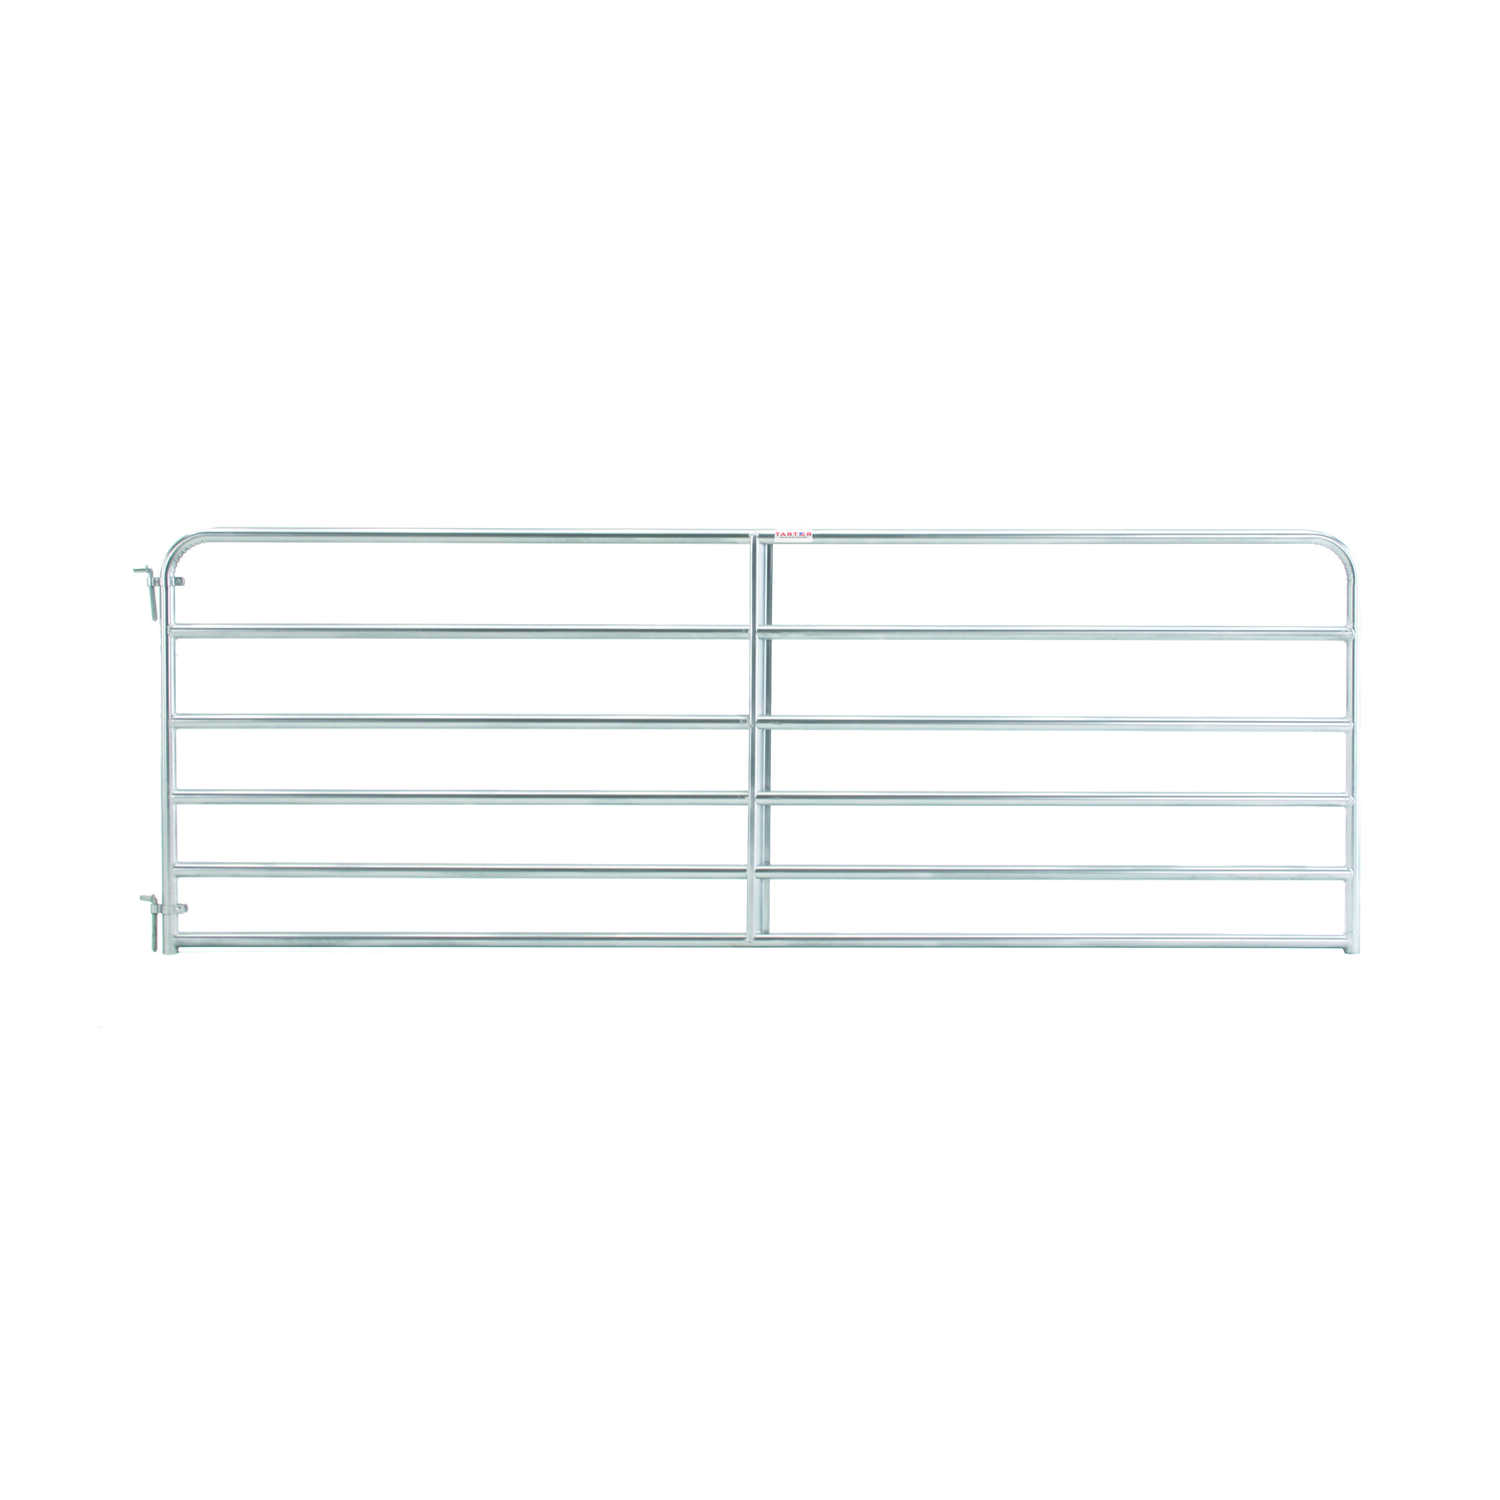 Tarter  50 in. H x 1.75 in. W x 12 ft. L Galvanized Steel  Tube Gate